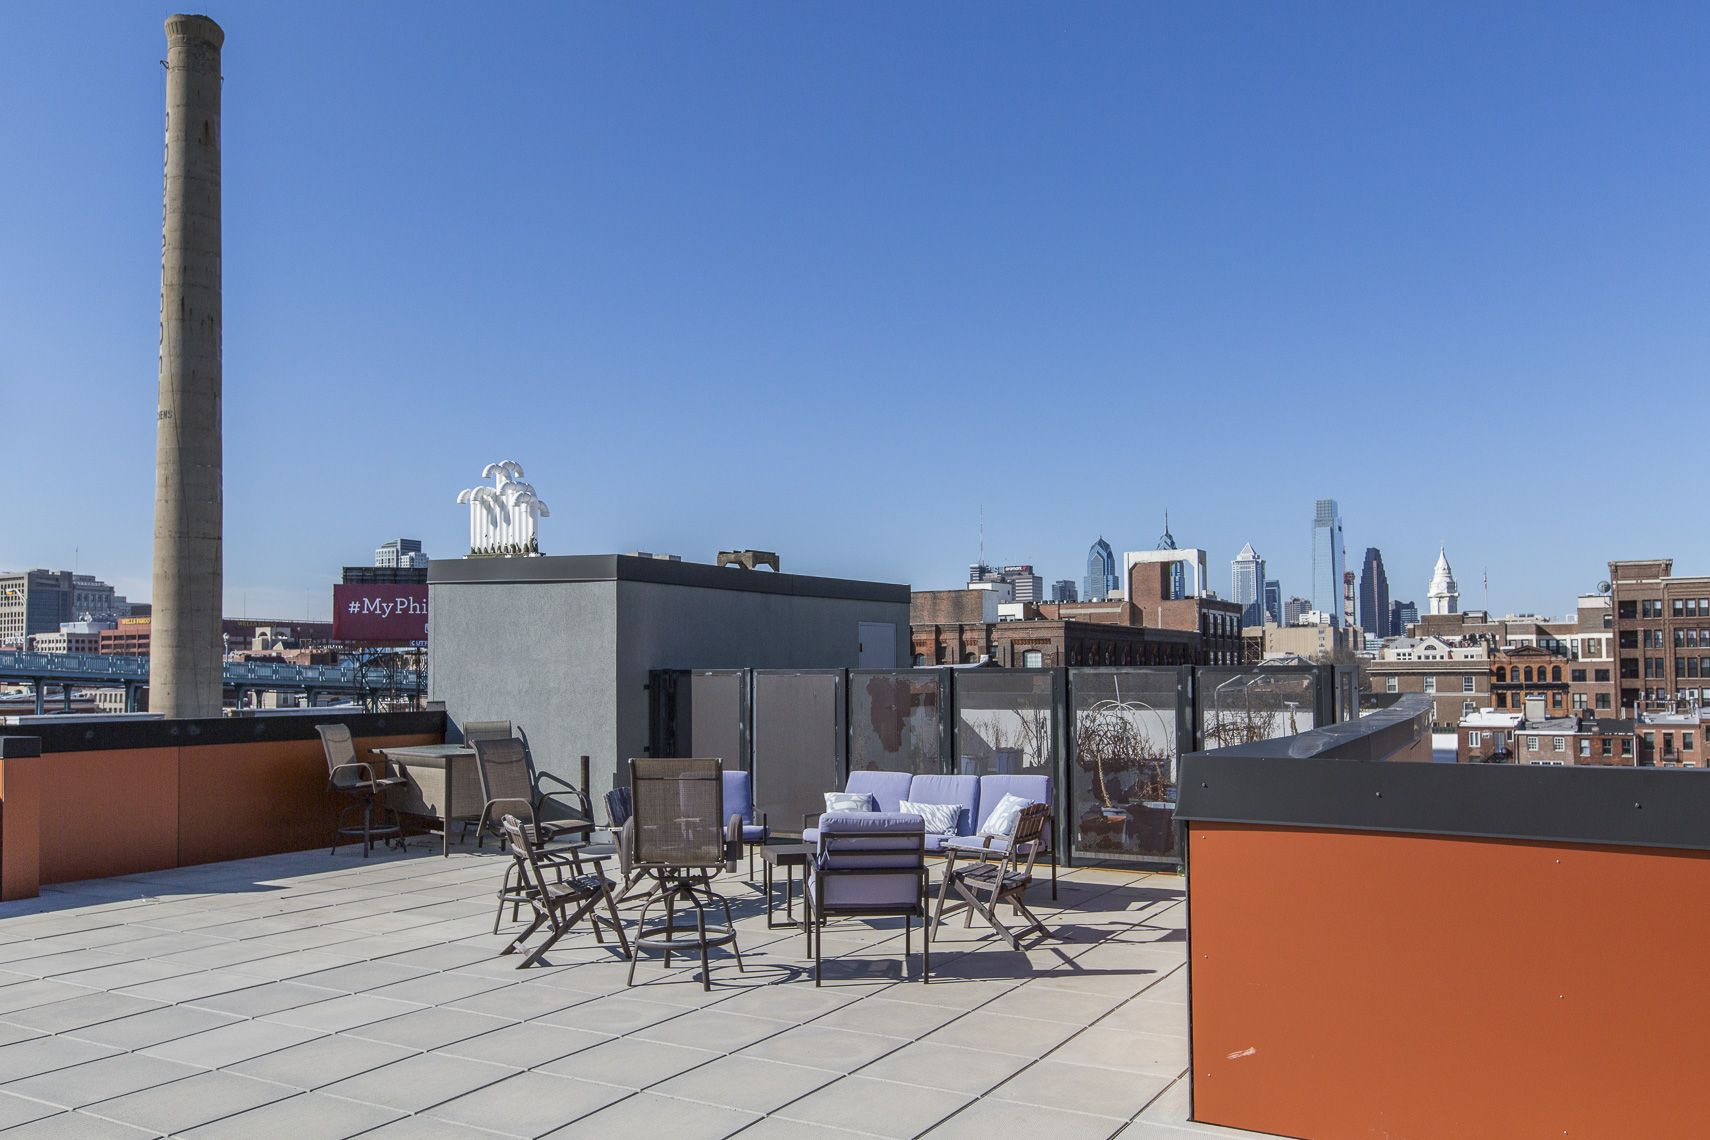 Pin by The Grosskopf Group on Philly Urban Living | Urban ... on Urban Living Outdoor id=26871